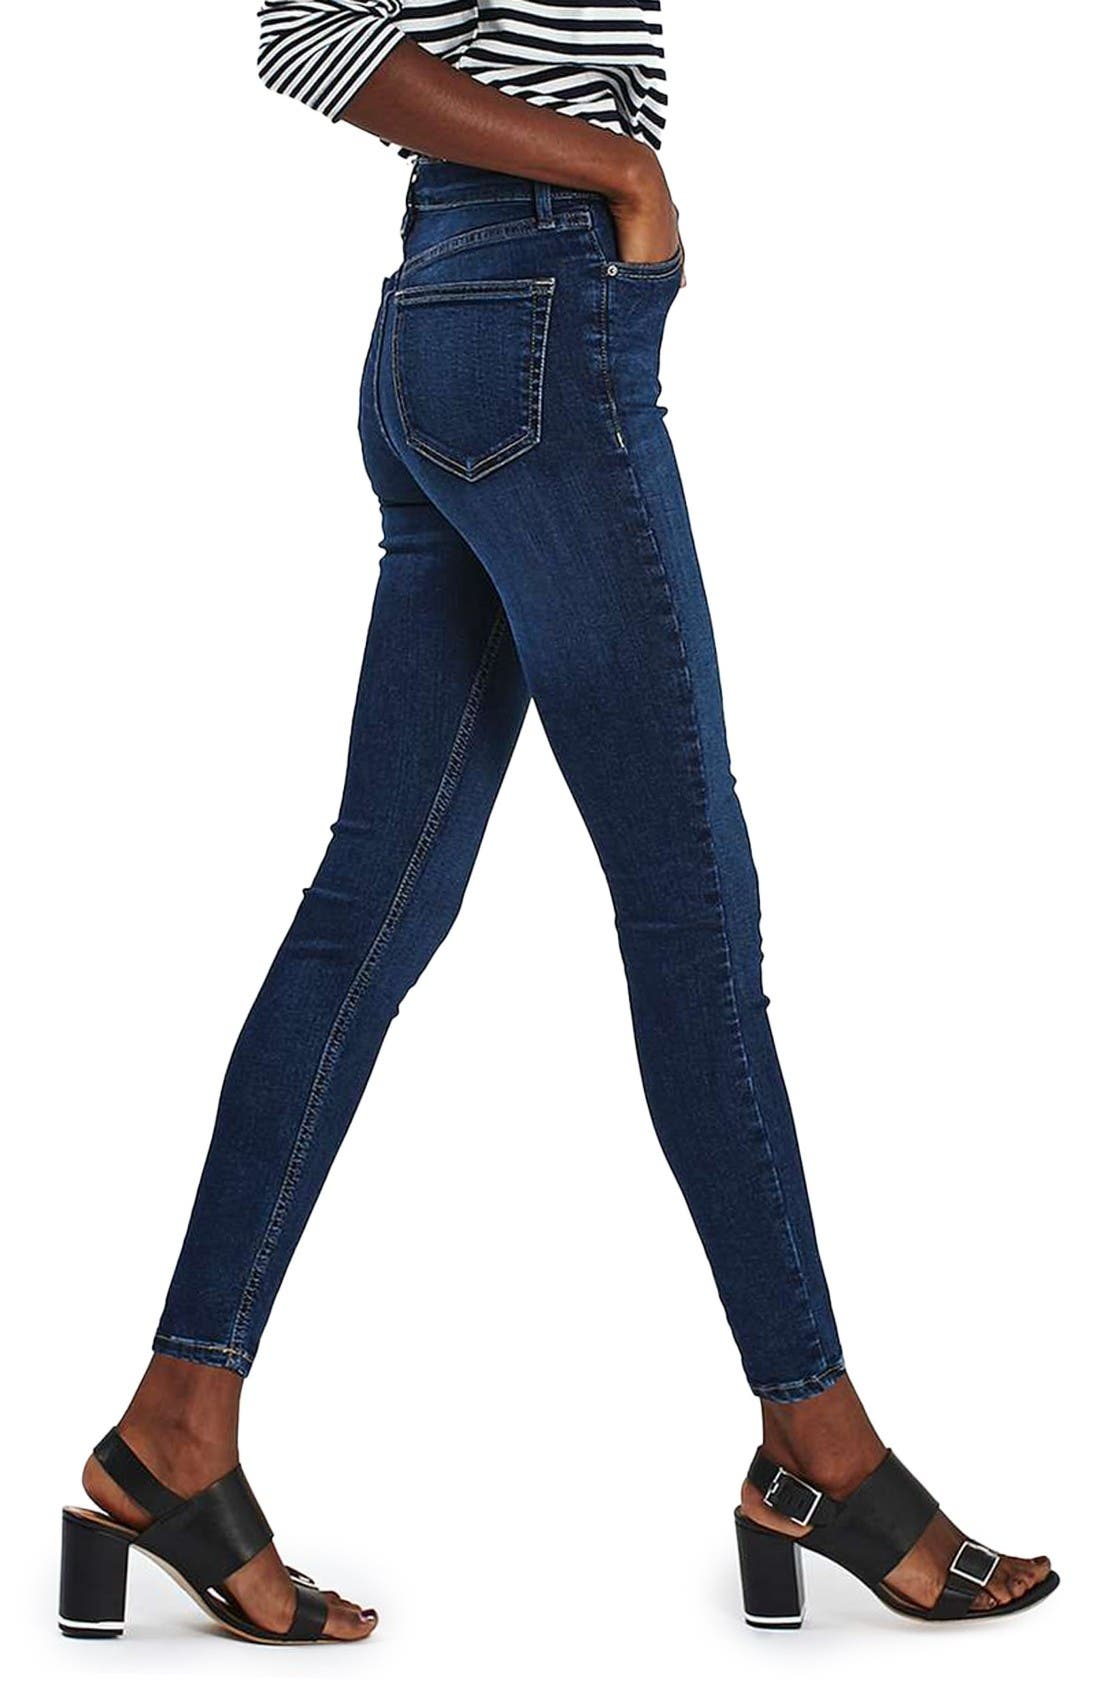 Jamie High Waist Ankle Skinny Jeans,                             Alternate thumbnail 3, color,                             Indigo